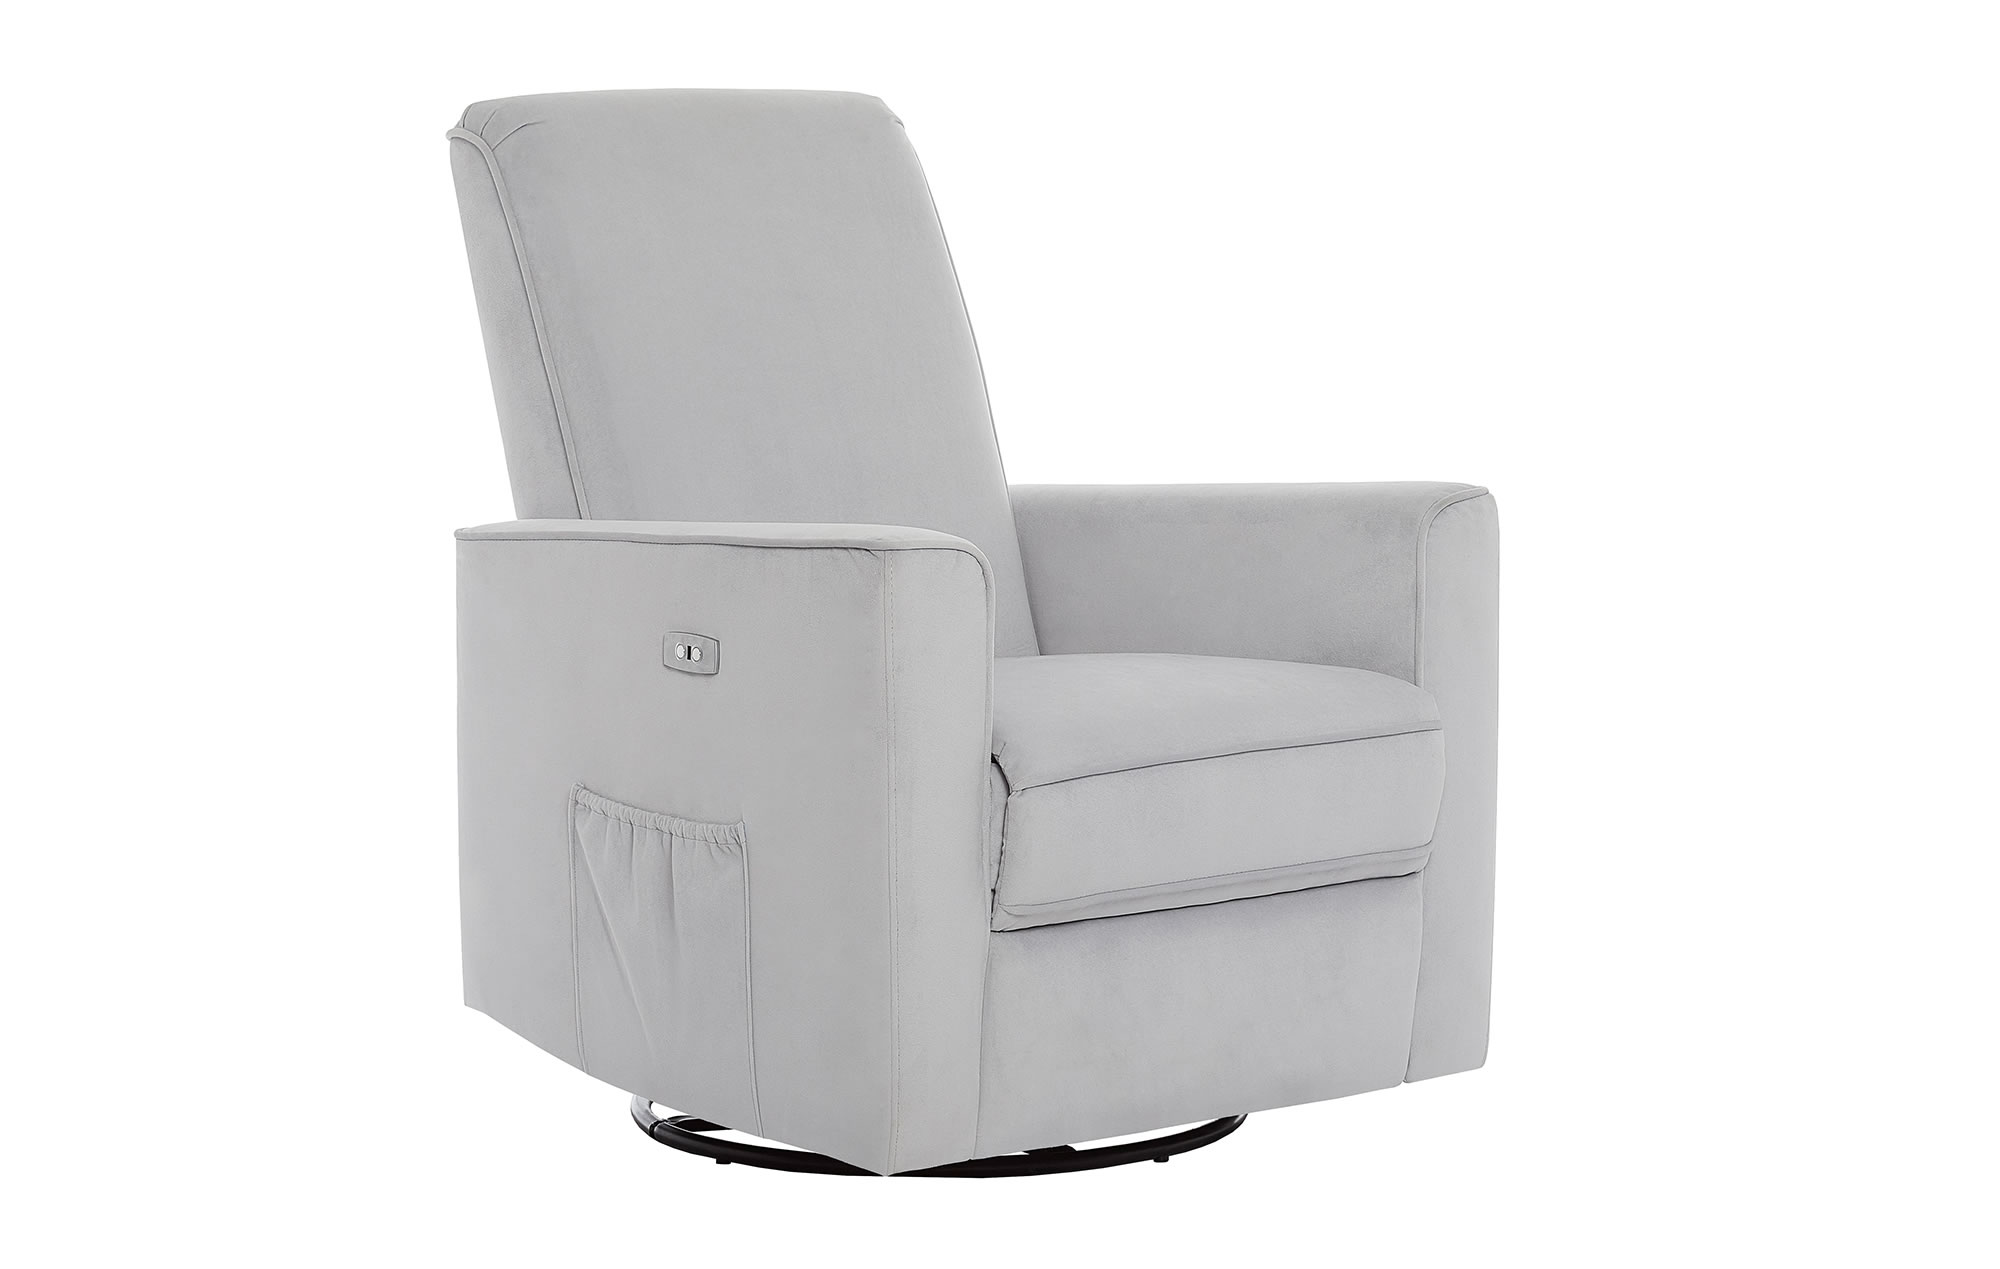 Evolur Harlow Deluxe Glider|Recliner|Rocker in Grey